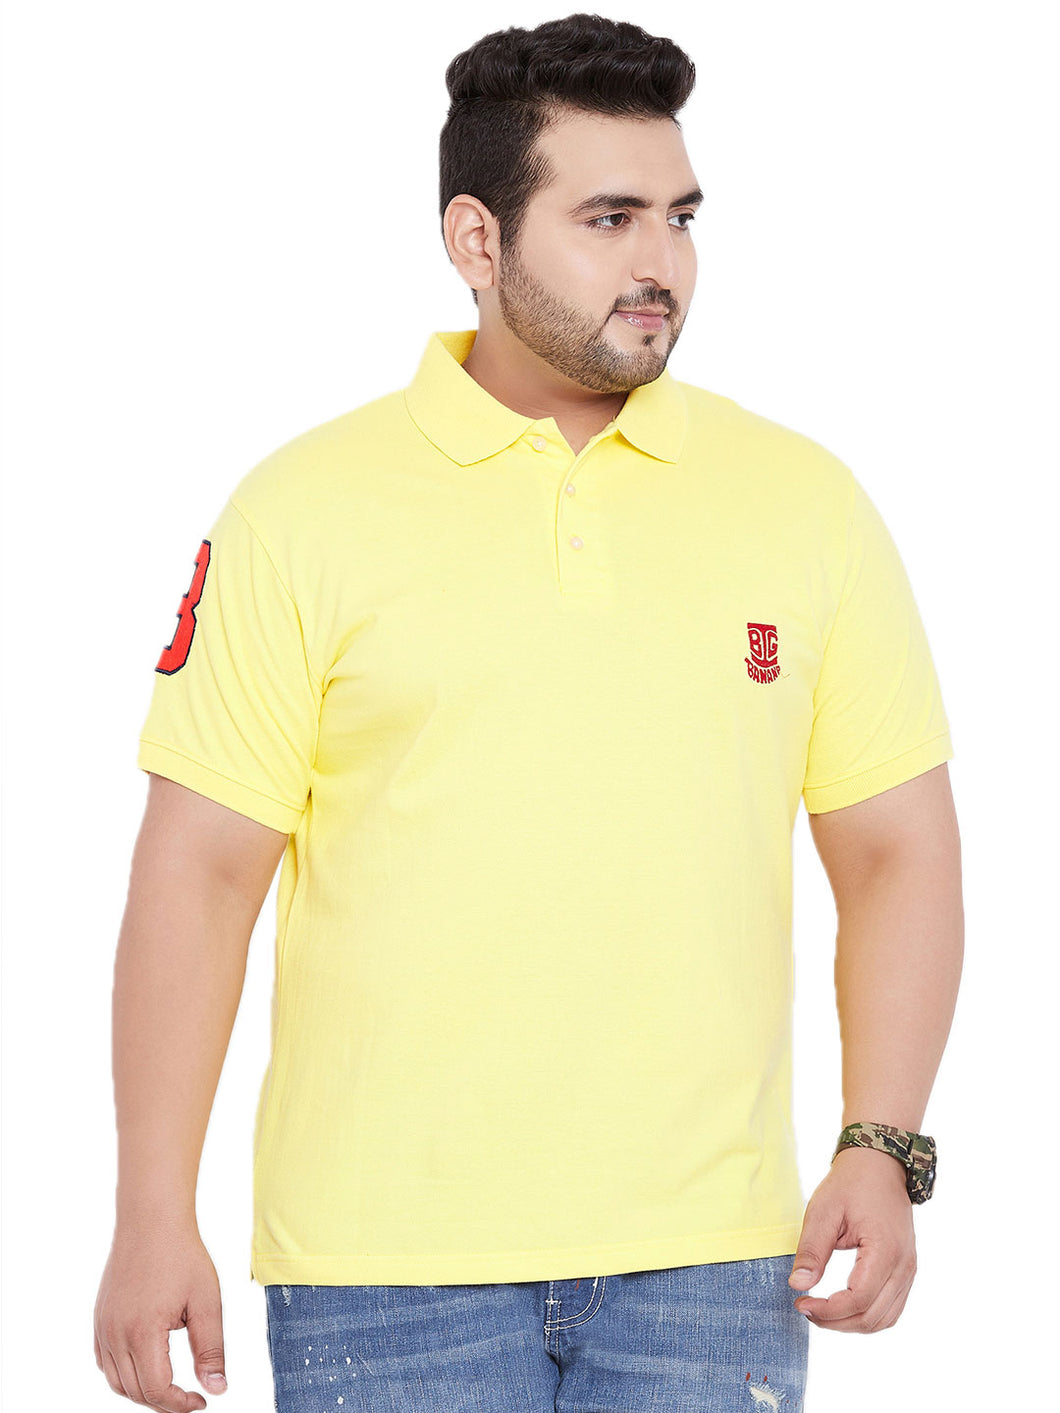 bigbanana TIM Yellow Polo T-Shirt - Bigbanana